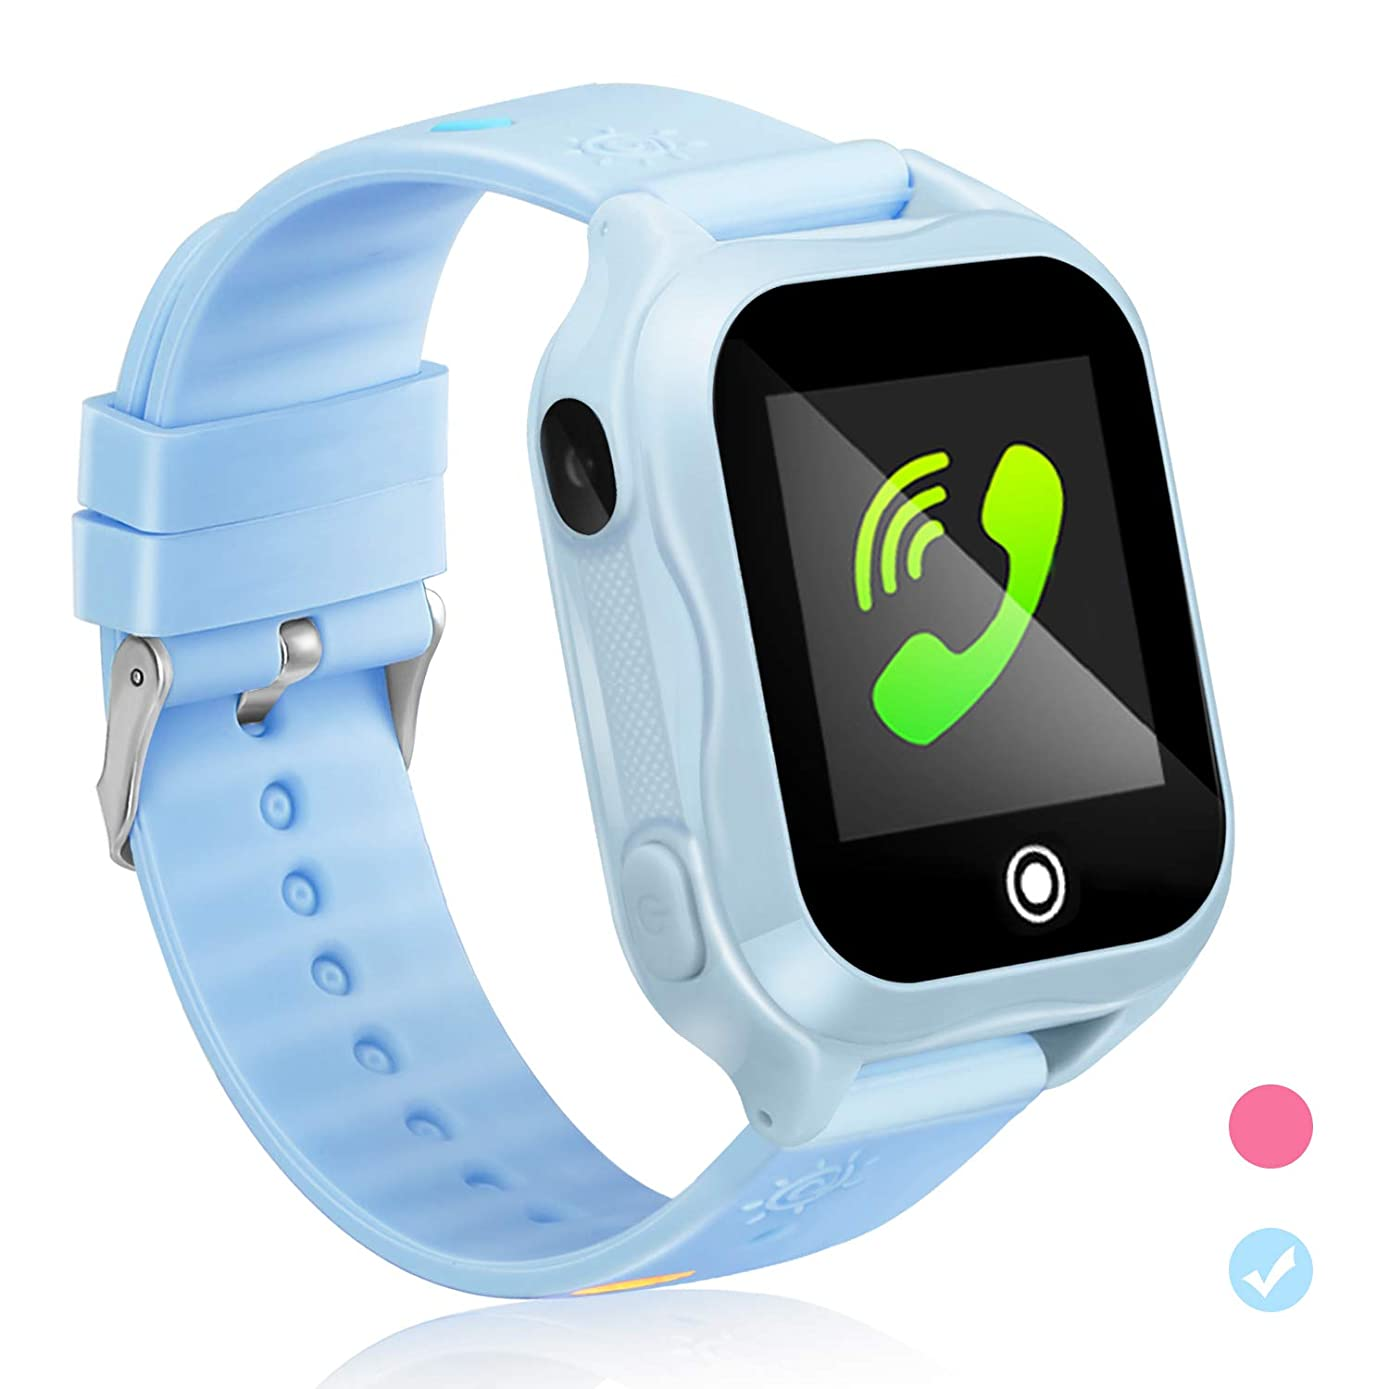 Kids Smartwatch Kids Smart Watch Phone with GPS Waterproof and App Remote Control Unlocked Kids SmartWatches Phone with Voice Chat Touch Screen Camera Compatible with Android and iOS